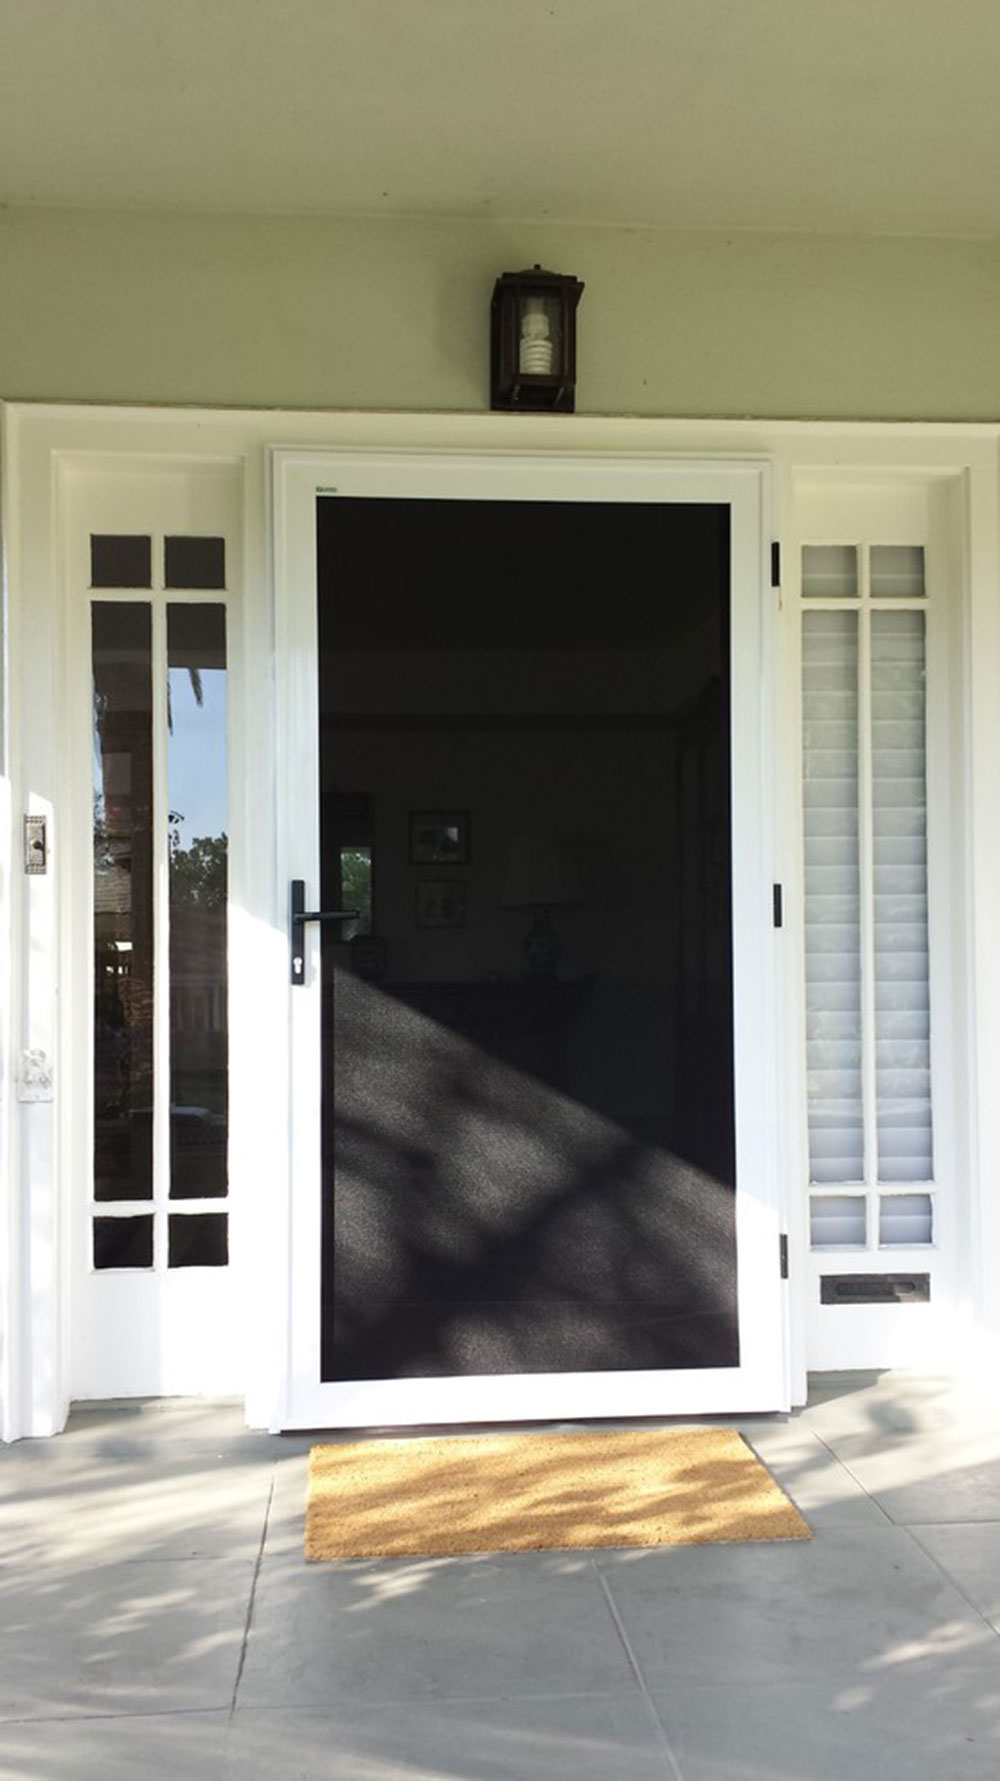 Front-hinged security screen door -–- Pasadena-by-California security screens How to improve the security of your front door without spending a fortune